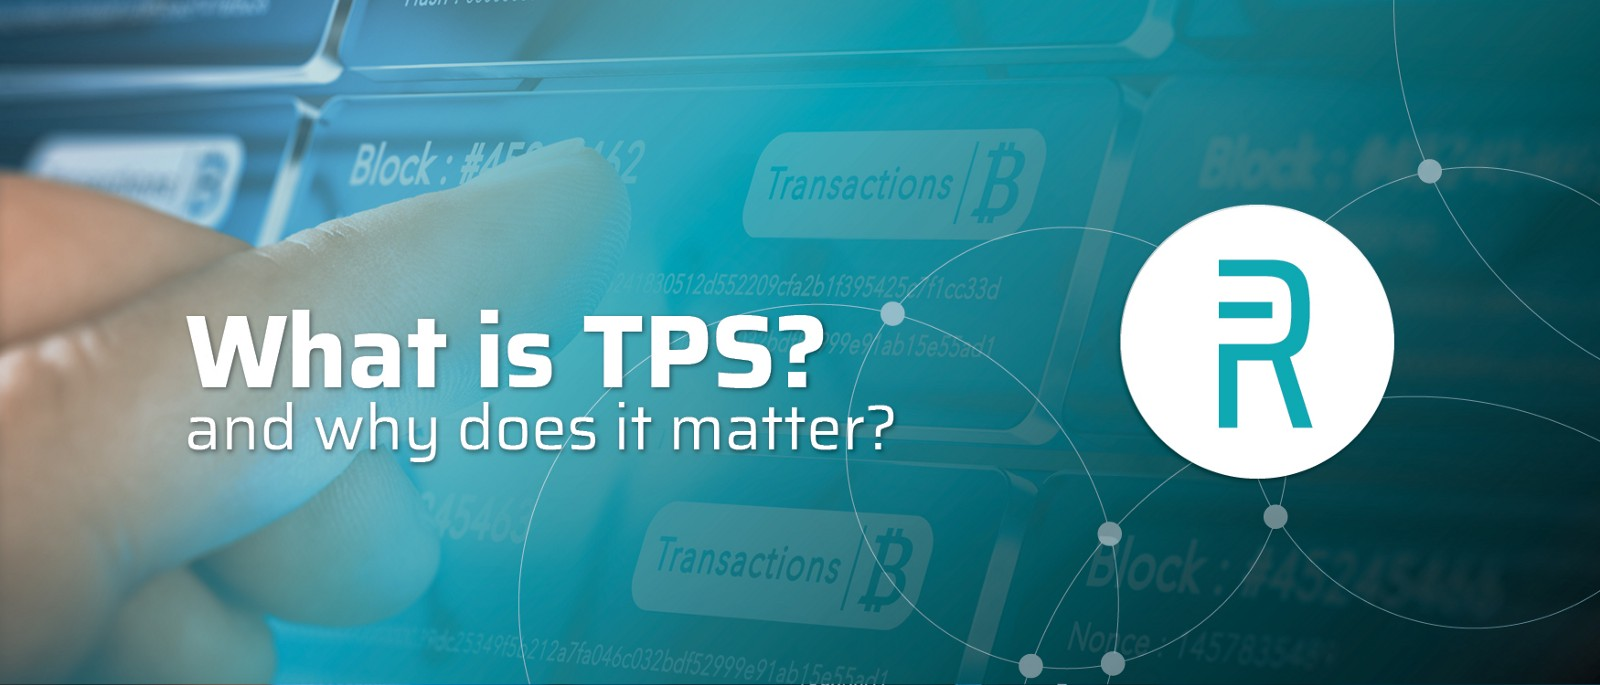 What Is Tps >> What Is Tps And Why Does It Matter Rebellious Coin Medium